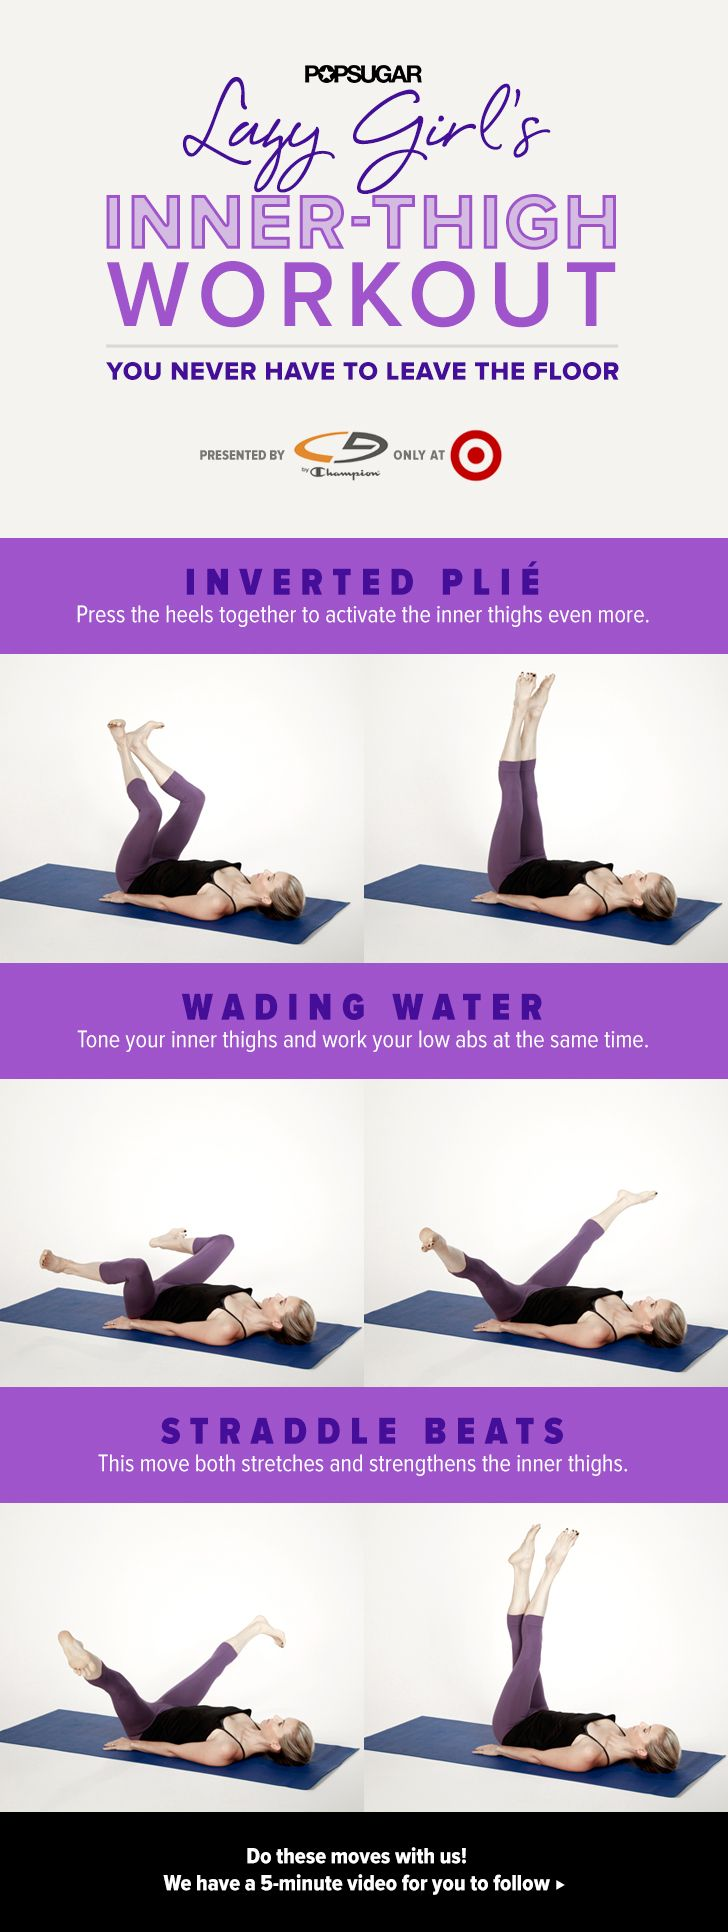 3 Moves To Tone Your Inner Thighs